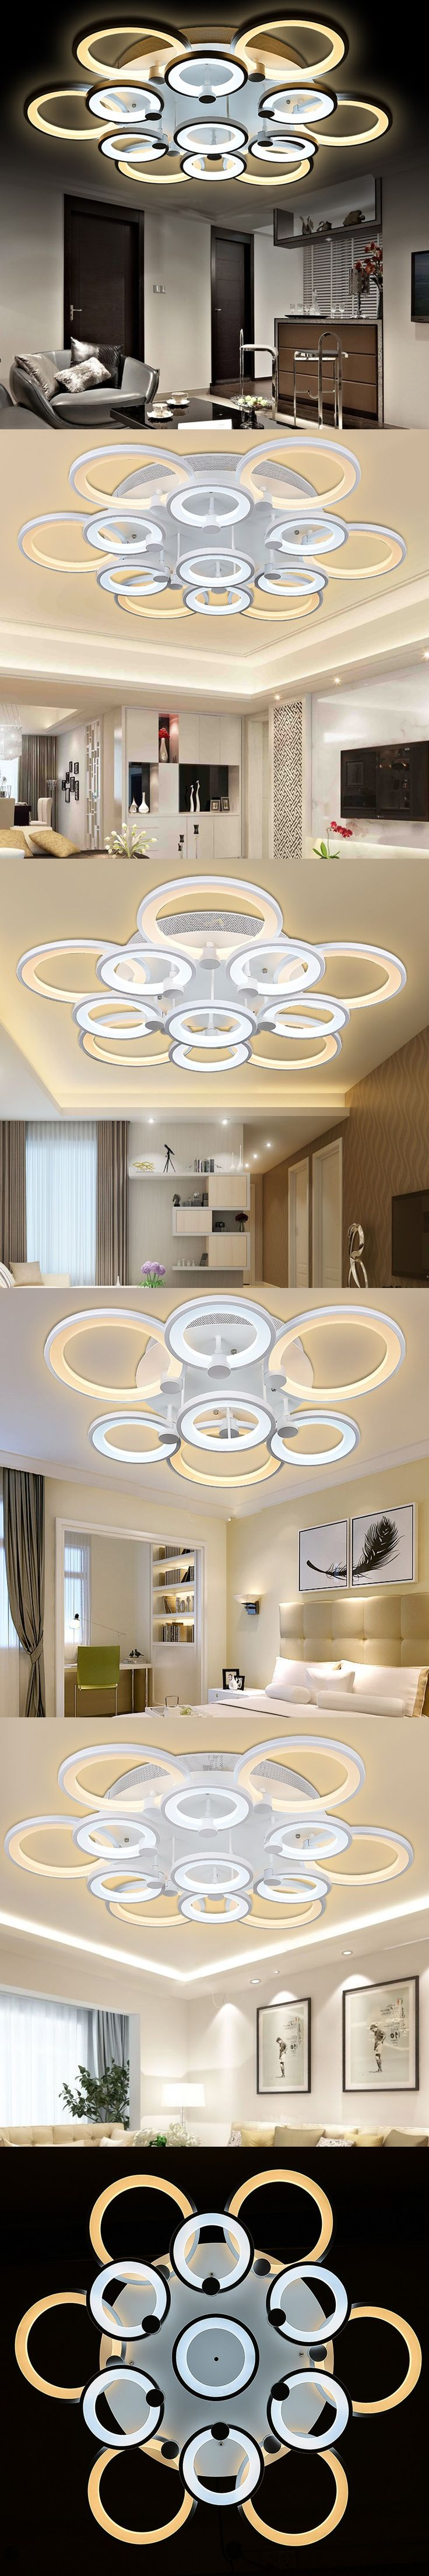 2016 Modern living room bedroom led ceiling lights home indoor decoration lighting light fixture modern acrylic led ceiling lamp $119